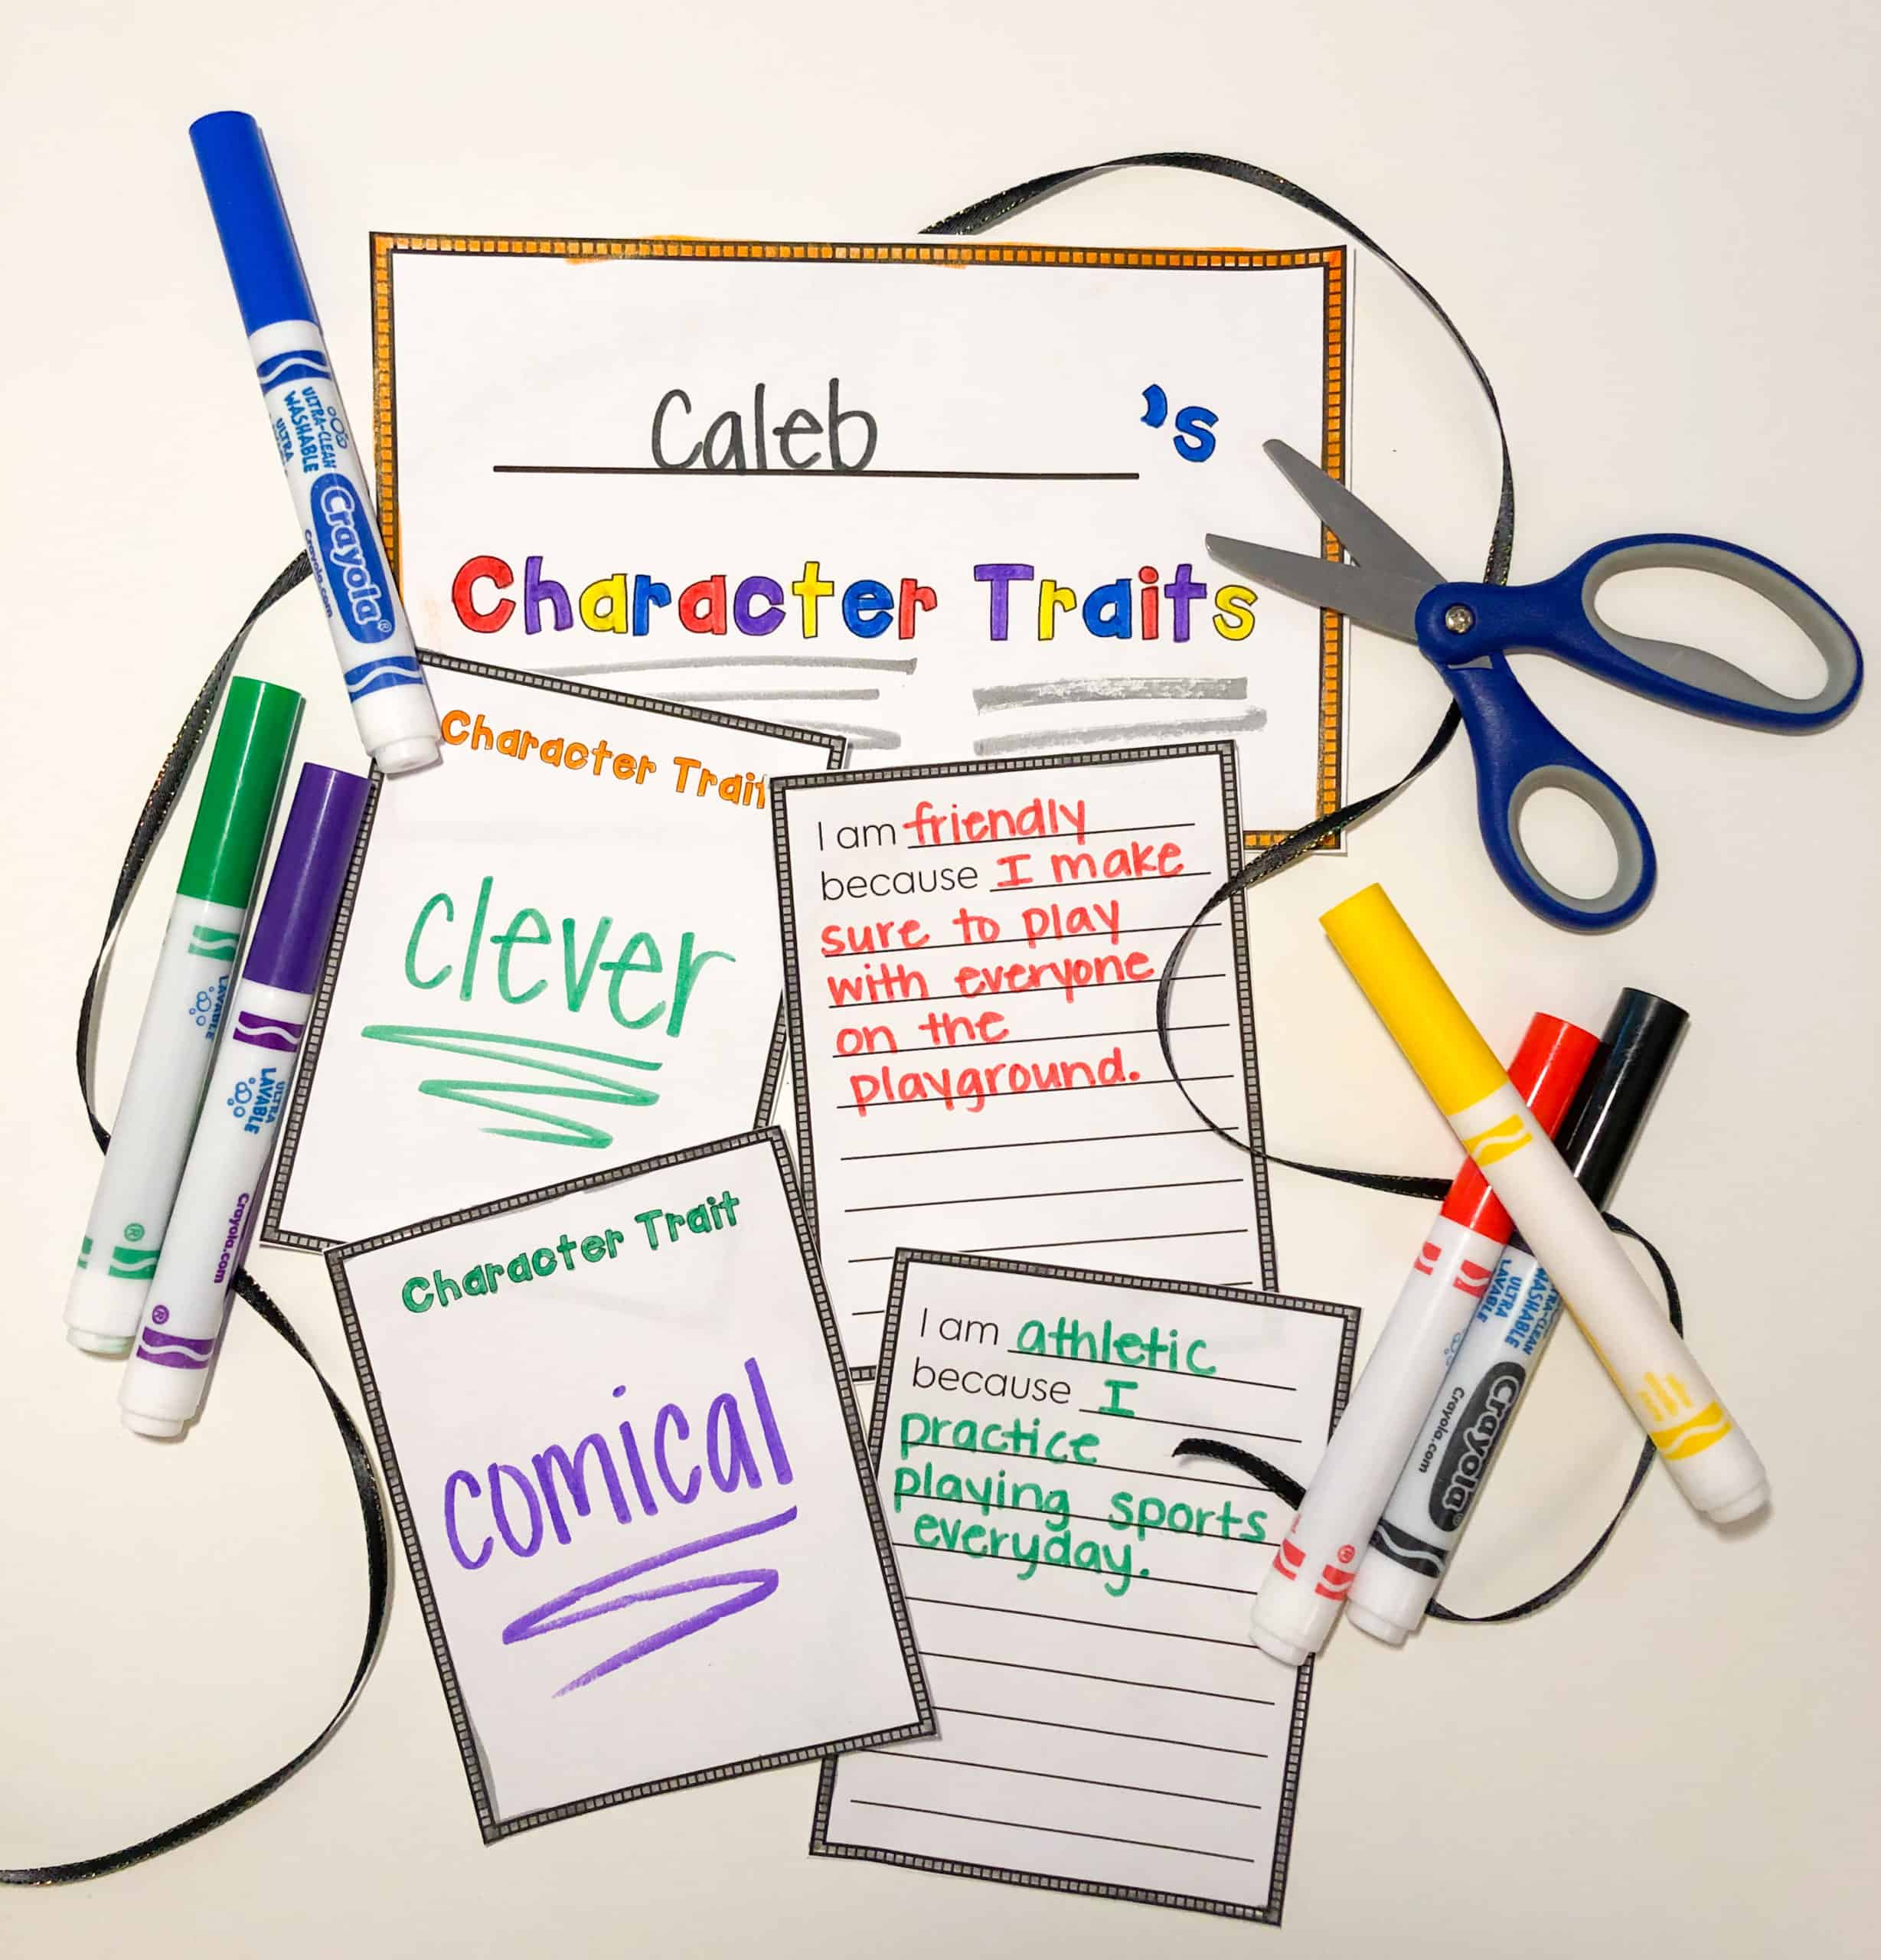 This character traits mobile freebie makes a great display for Parent Teacher Conferences or Open House